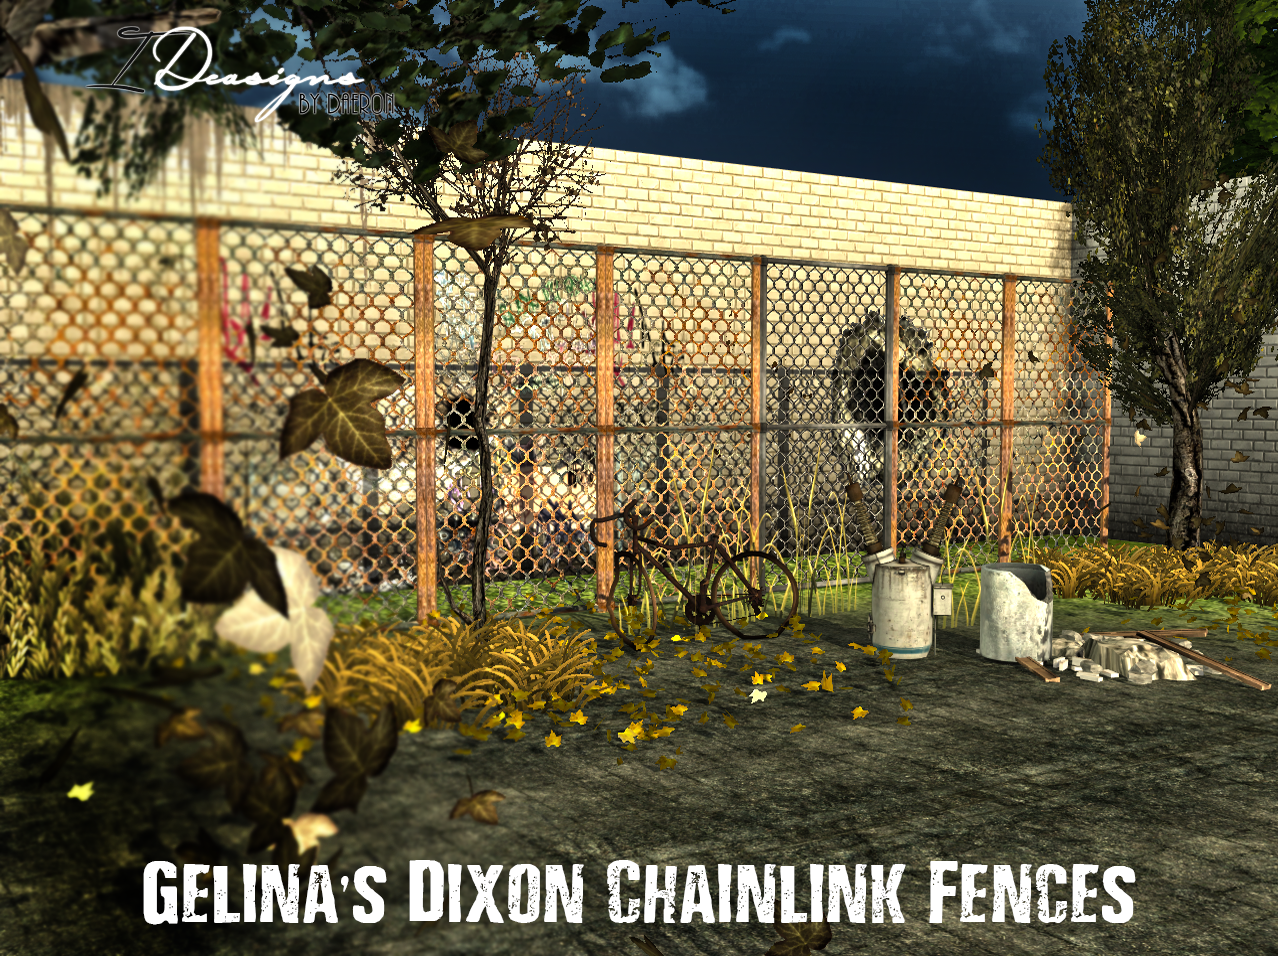 Dixon Chain Link Fence Conversion by Daer0n